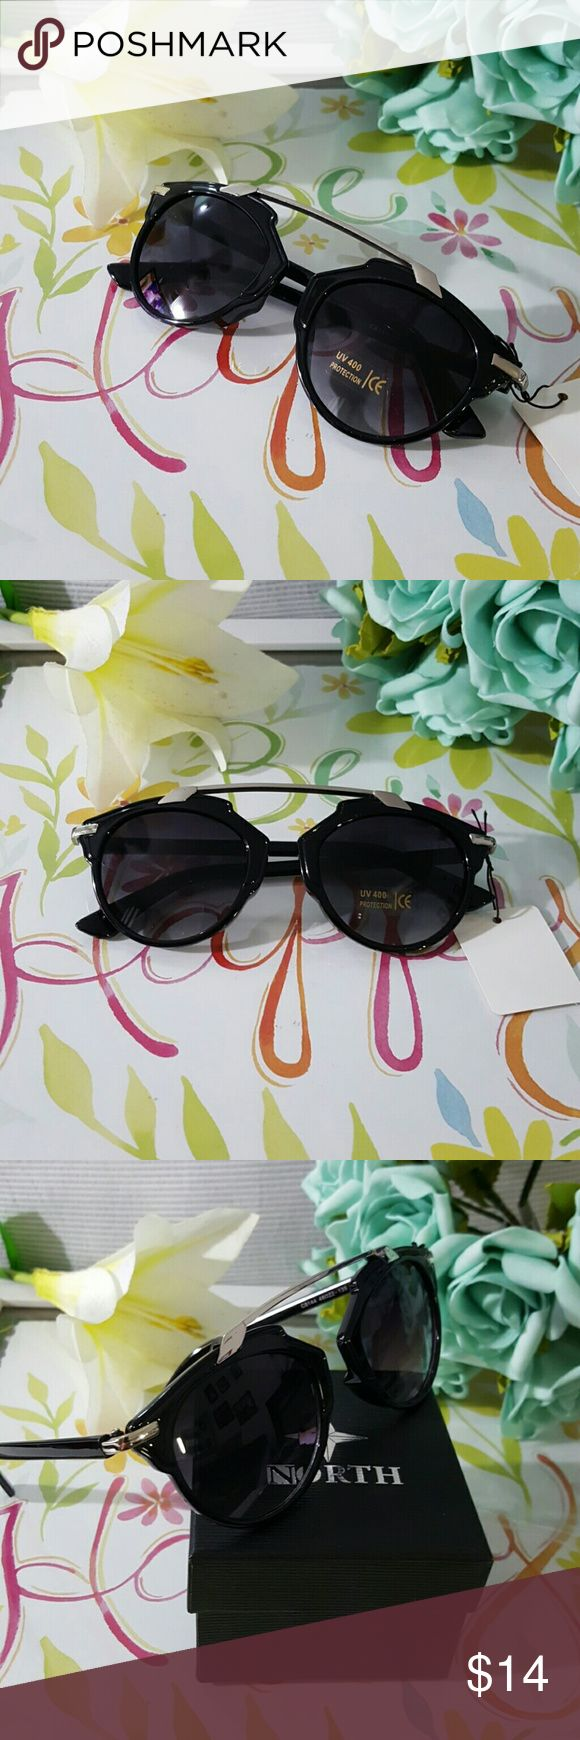 new Top quality Sunglasses Mirror d men or Women B new Top quality Sunglasses Mirror d men or Women Brand  new Retro Cateye  Glasses  100% UV400 Protection Against Harmful UVA/UVB Driving Tags :  Also check my whole closet many other deals.. such as. Latex waist trainer corset vest cincher butt lifter padded panty neoprene pants ans shirt sweat belt sweet sweat men and woman fashion sunglasses  phone covers lingerie tummy control skirt tops watches dresses white blue black pink red orange…